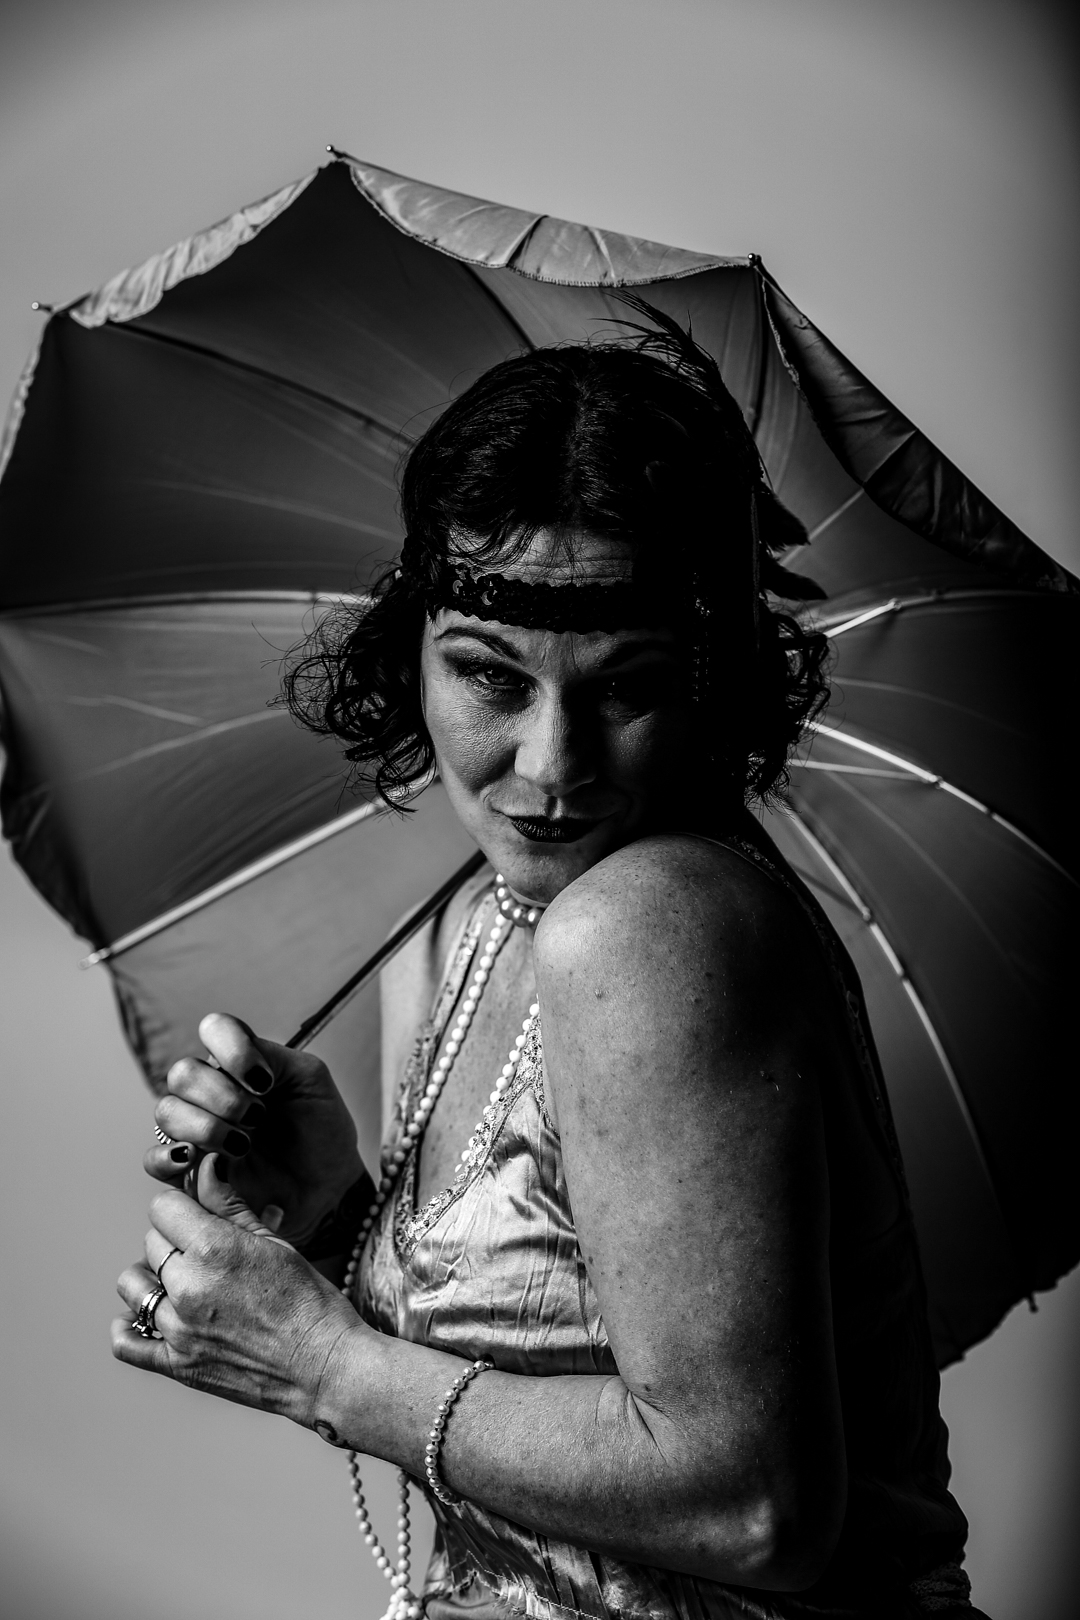 Woman dressed in 1920's fashion poses with umbrella